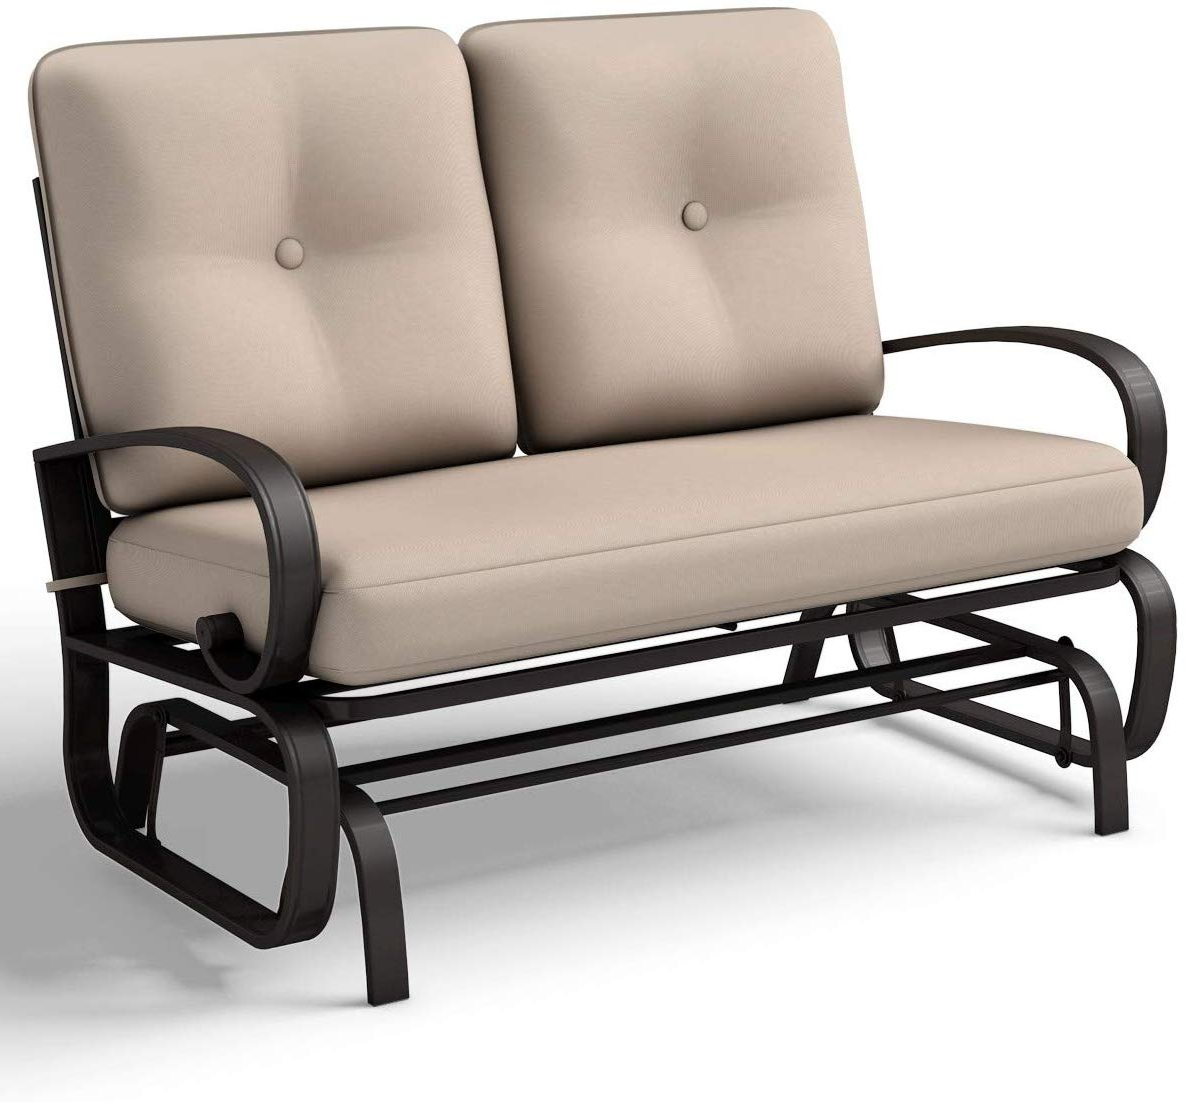 Giantex Loveseat Outdoor Patio Rocking Glider Cushioned 2 Seats Steel Frame  Furniture (Beige) Pertaining To 2020 Rocking Glider Benches With Cushions (View 6 of 30)